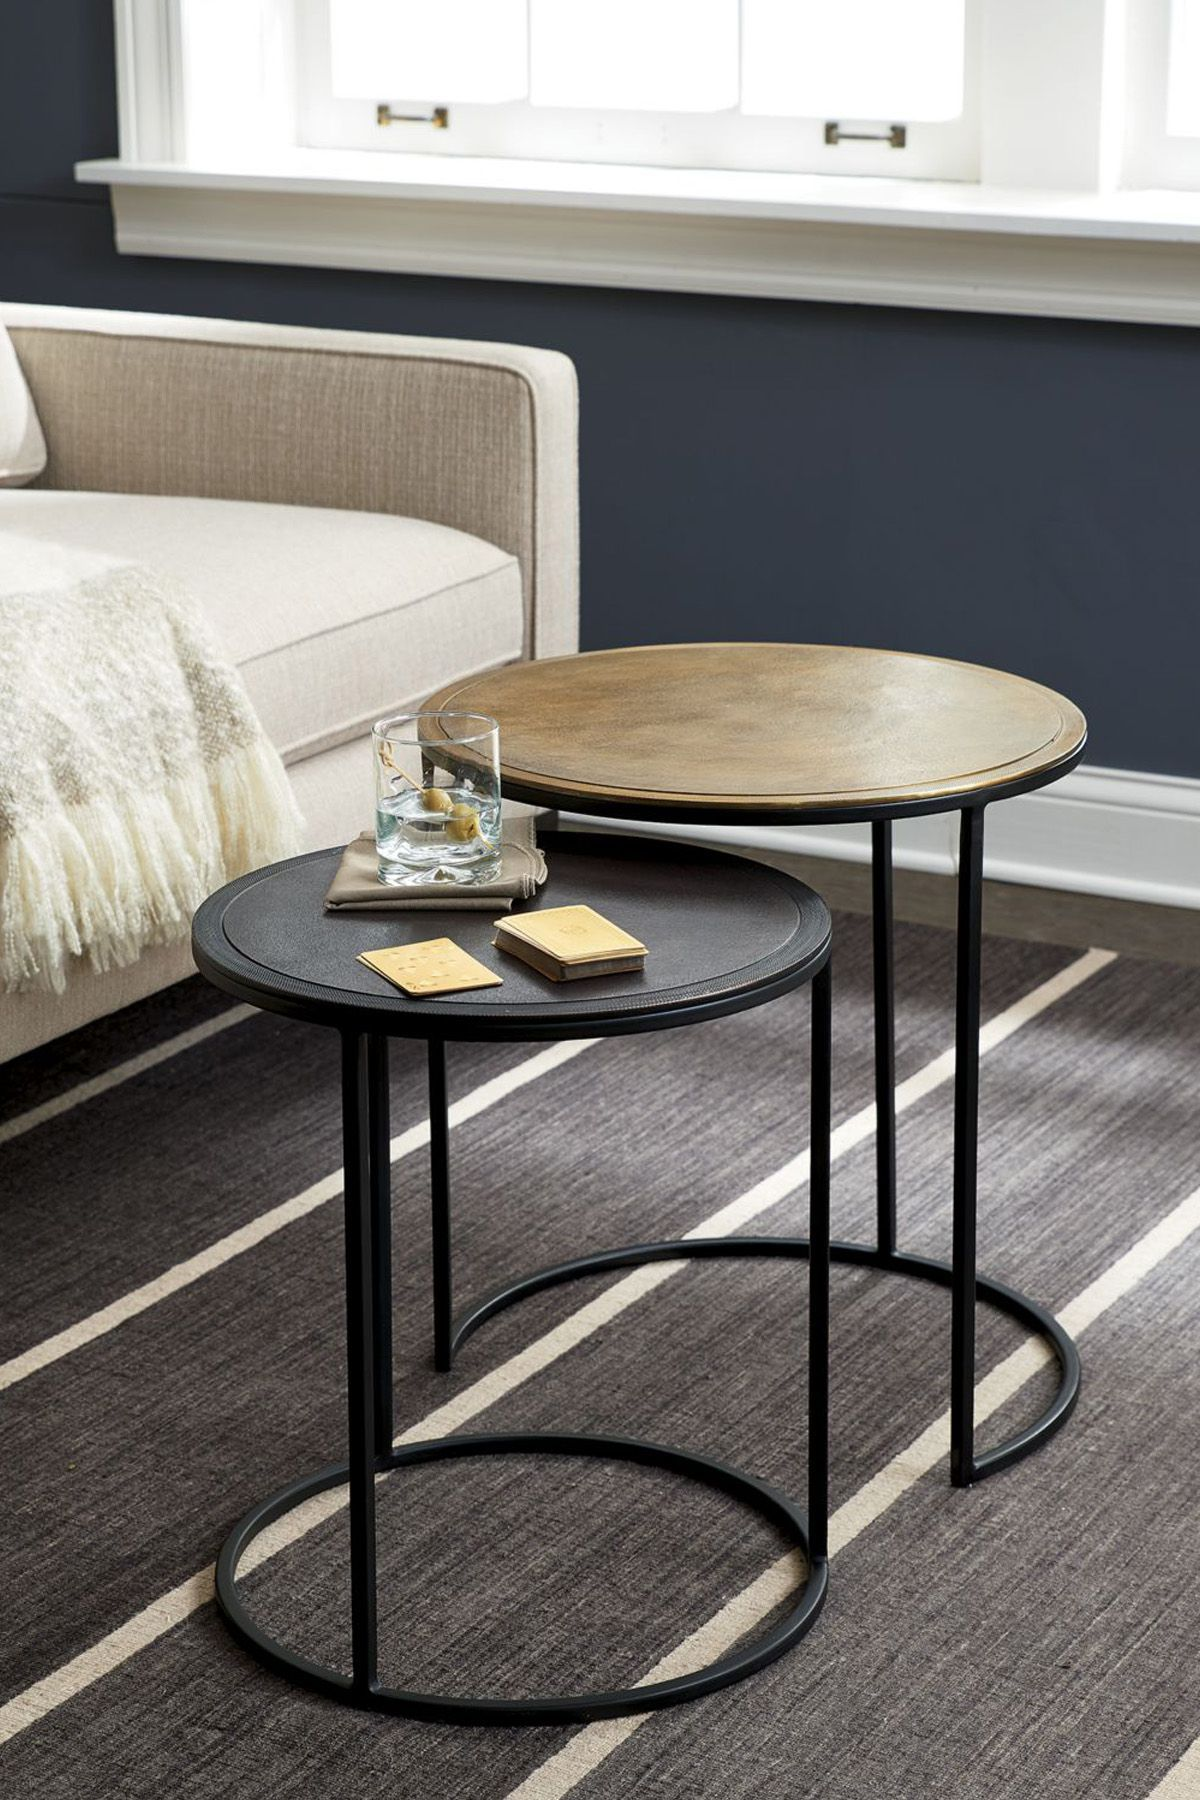 Knurl nesting accent tables